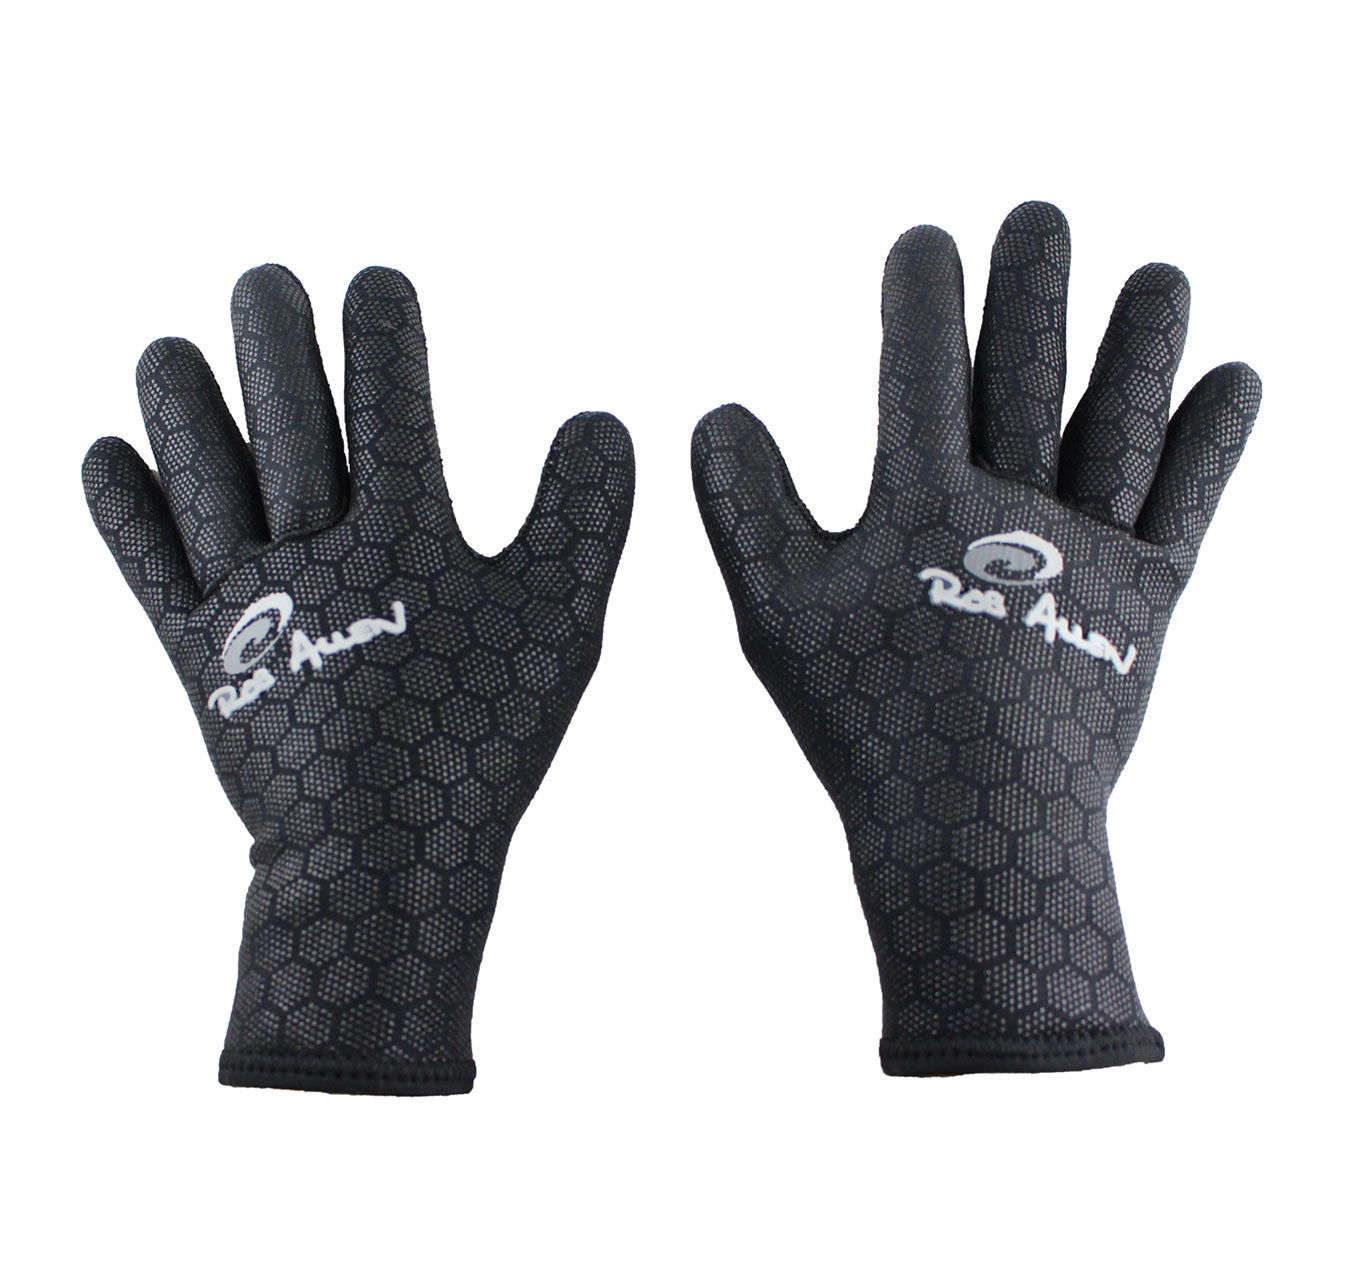 Rob Allen Stretch Gloves